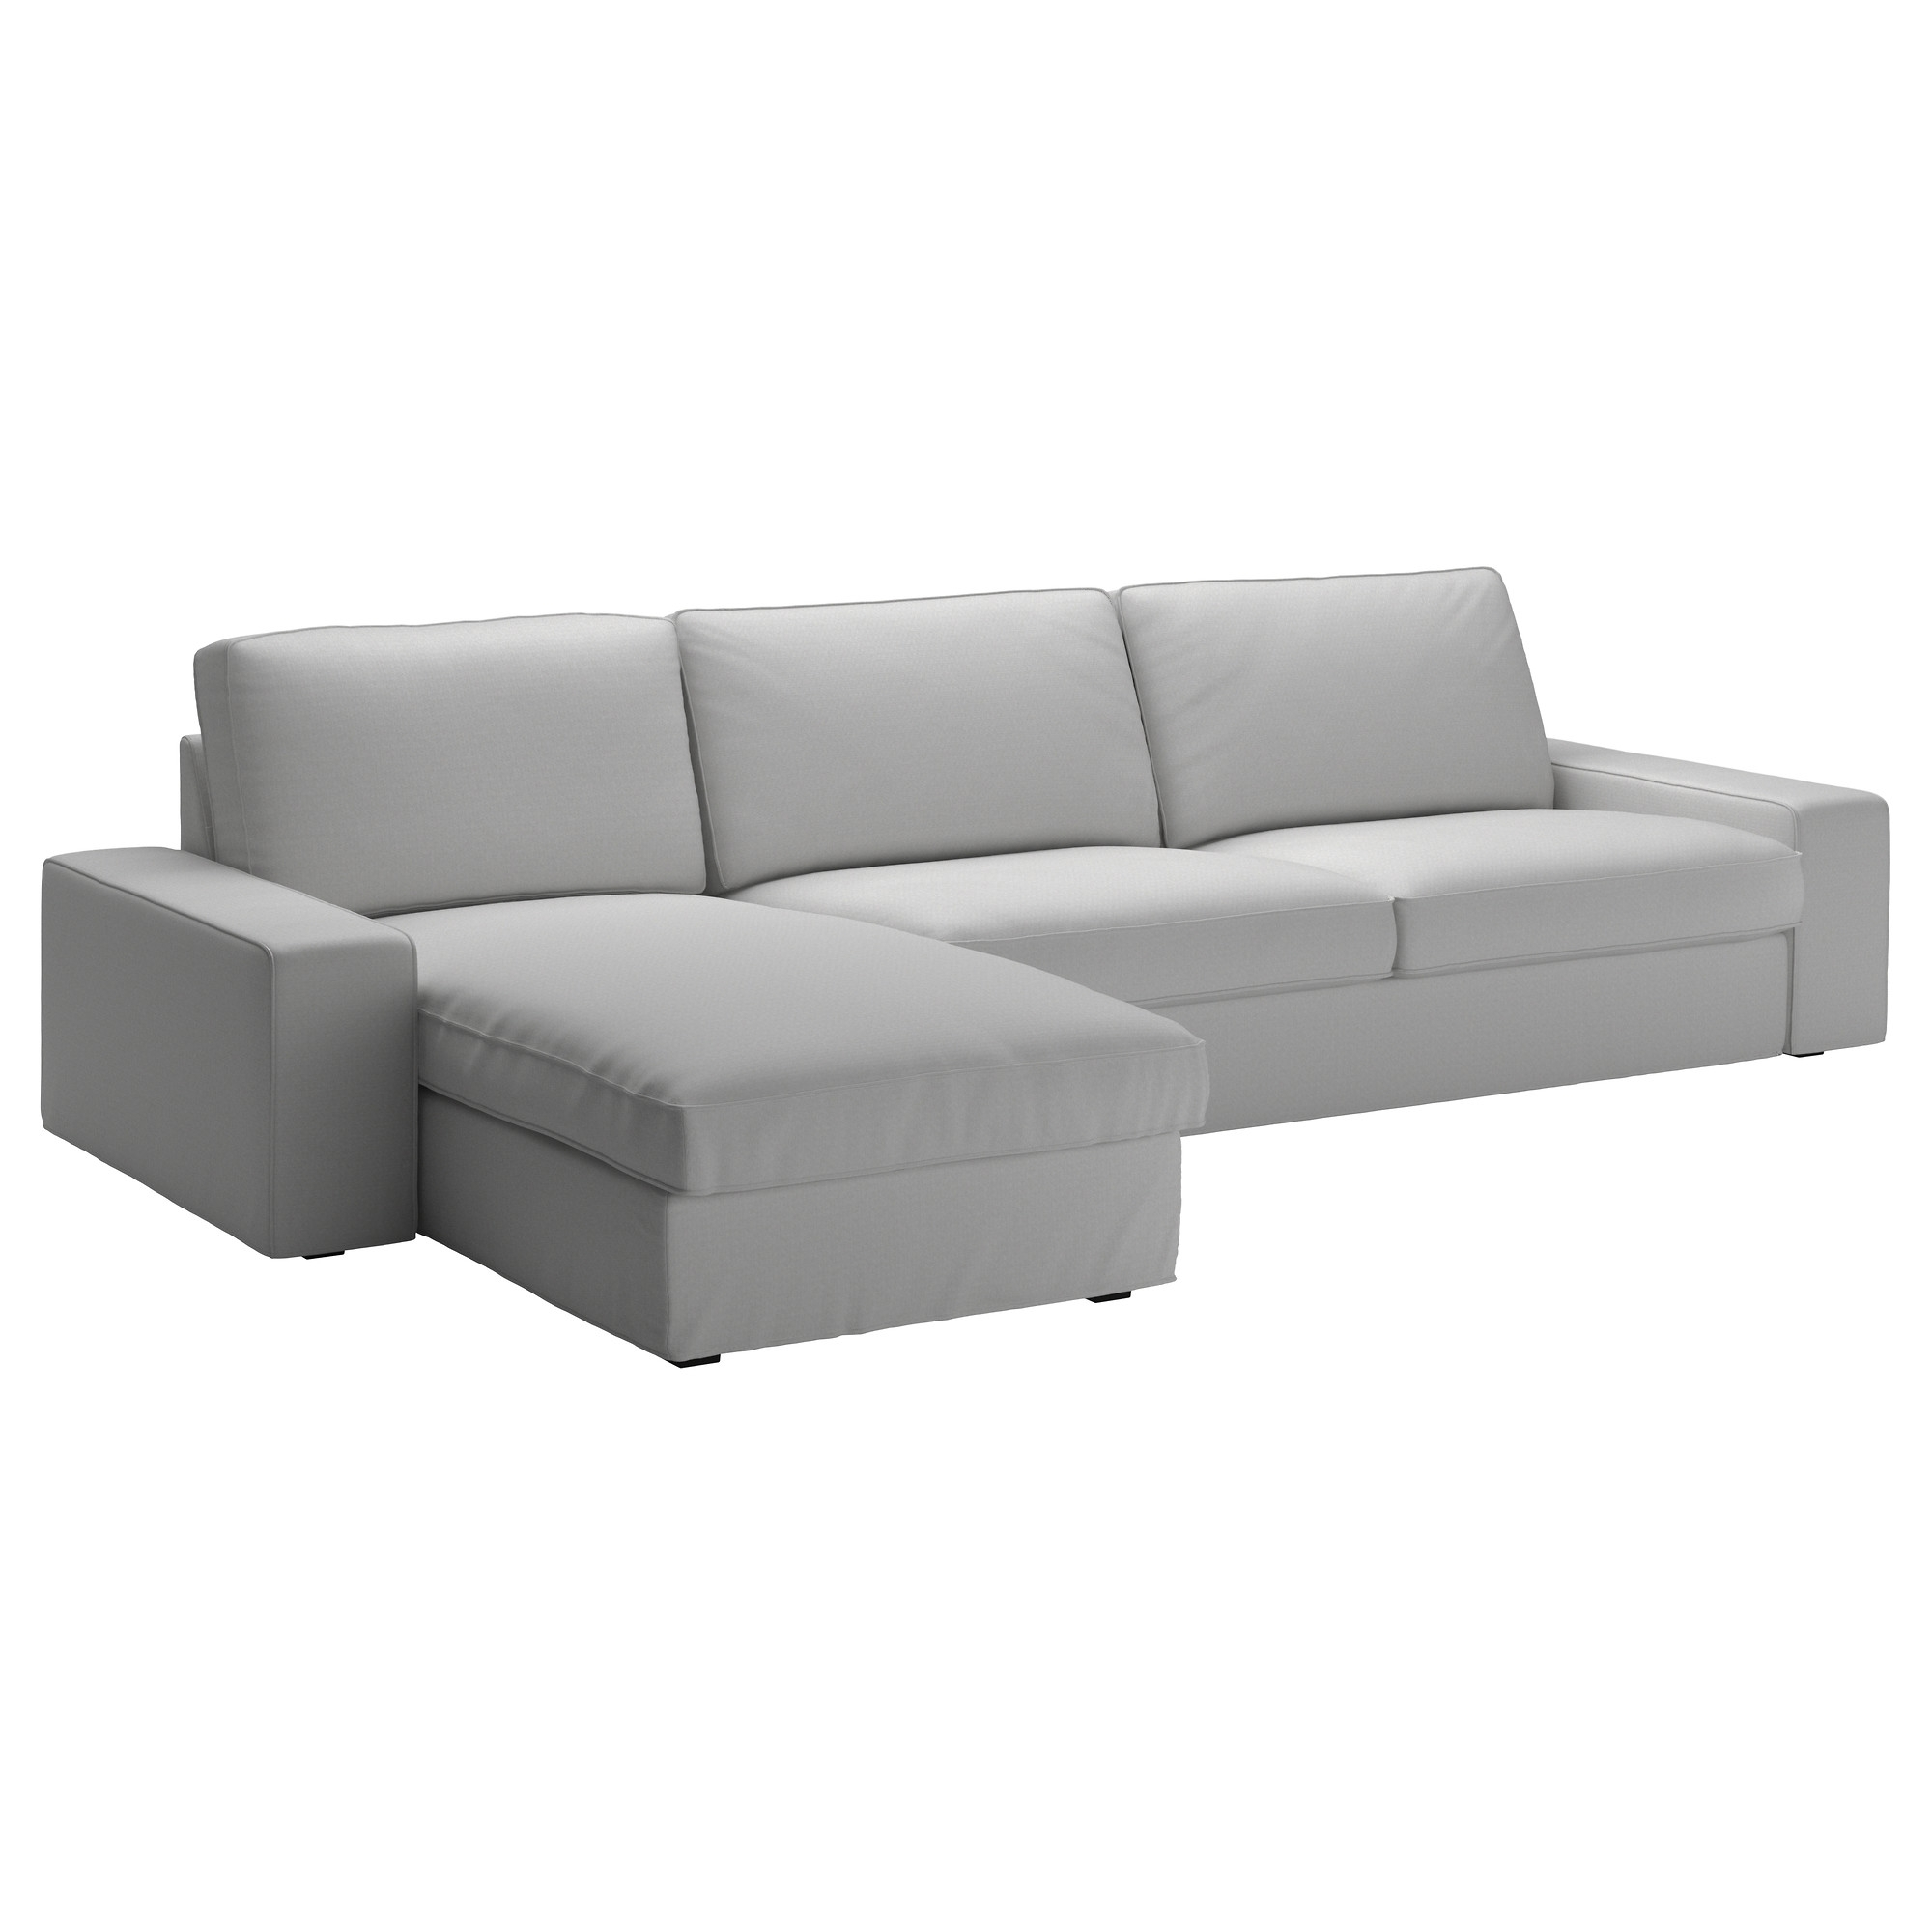 Well Known Kivik 4 Seat Sofa – Orrsta Light Grey – Ikea For 4 Seat Sofas (View 10 of 20)